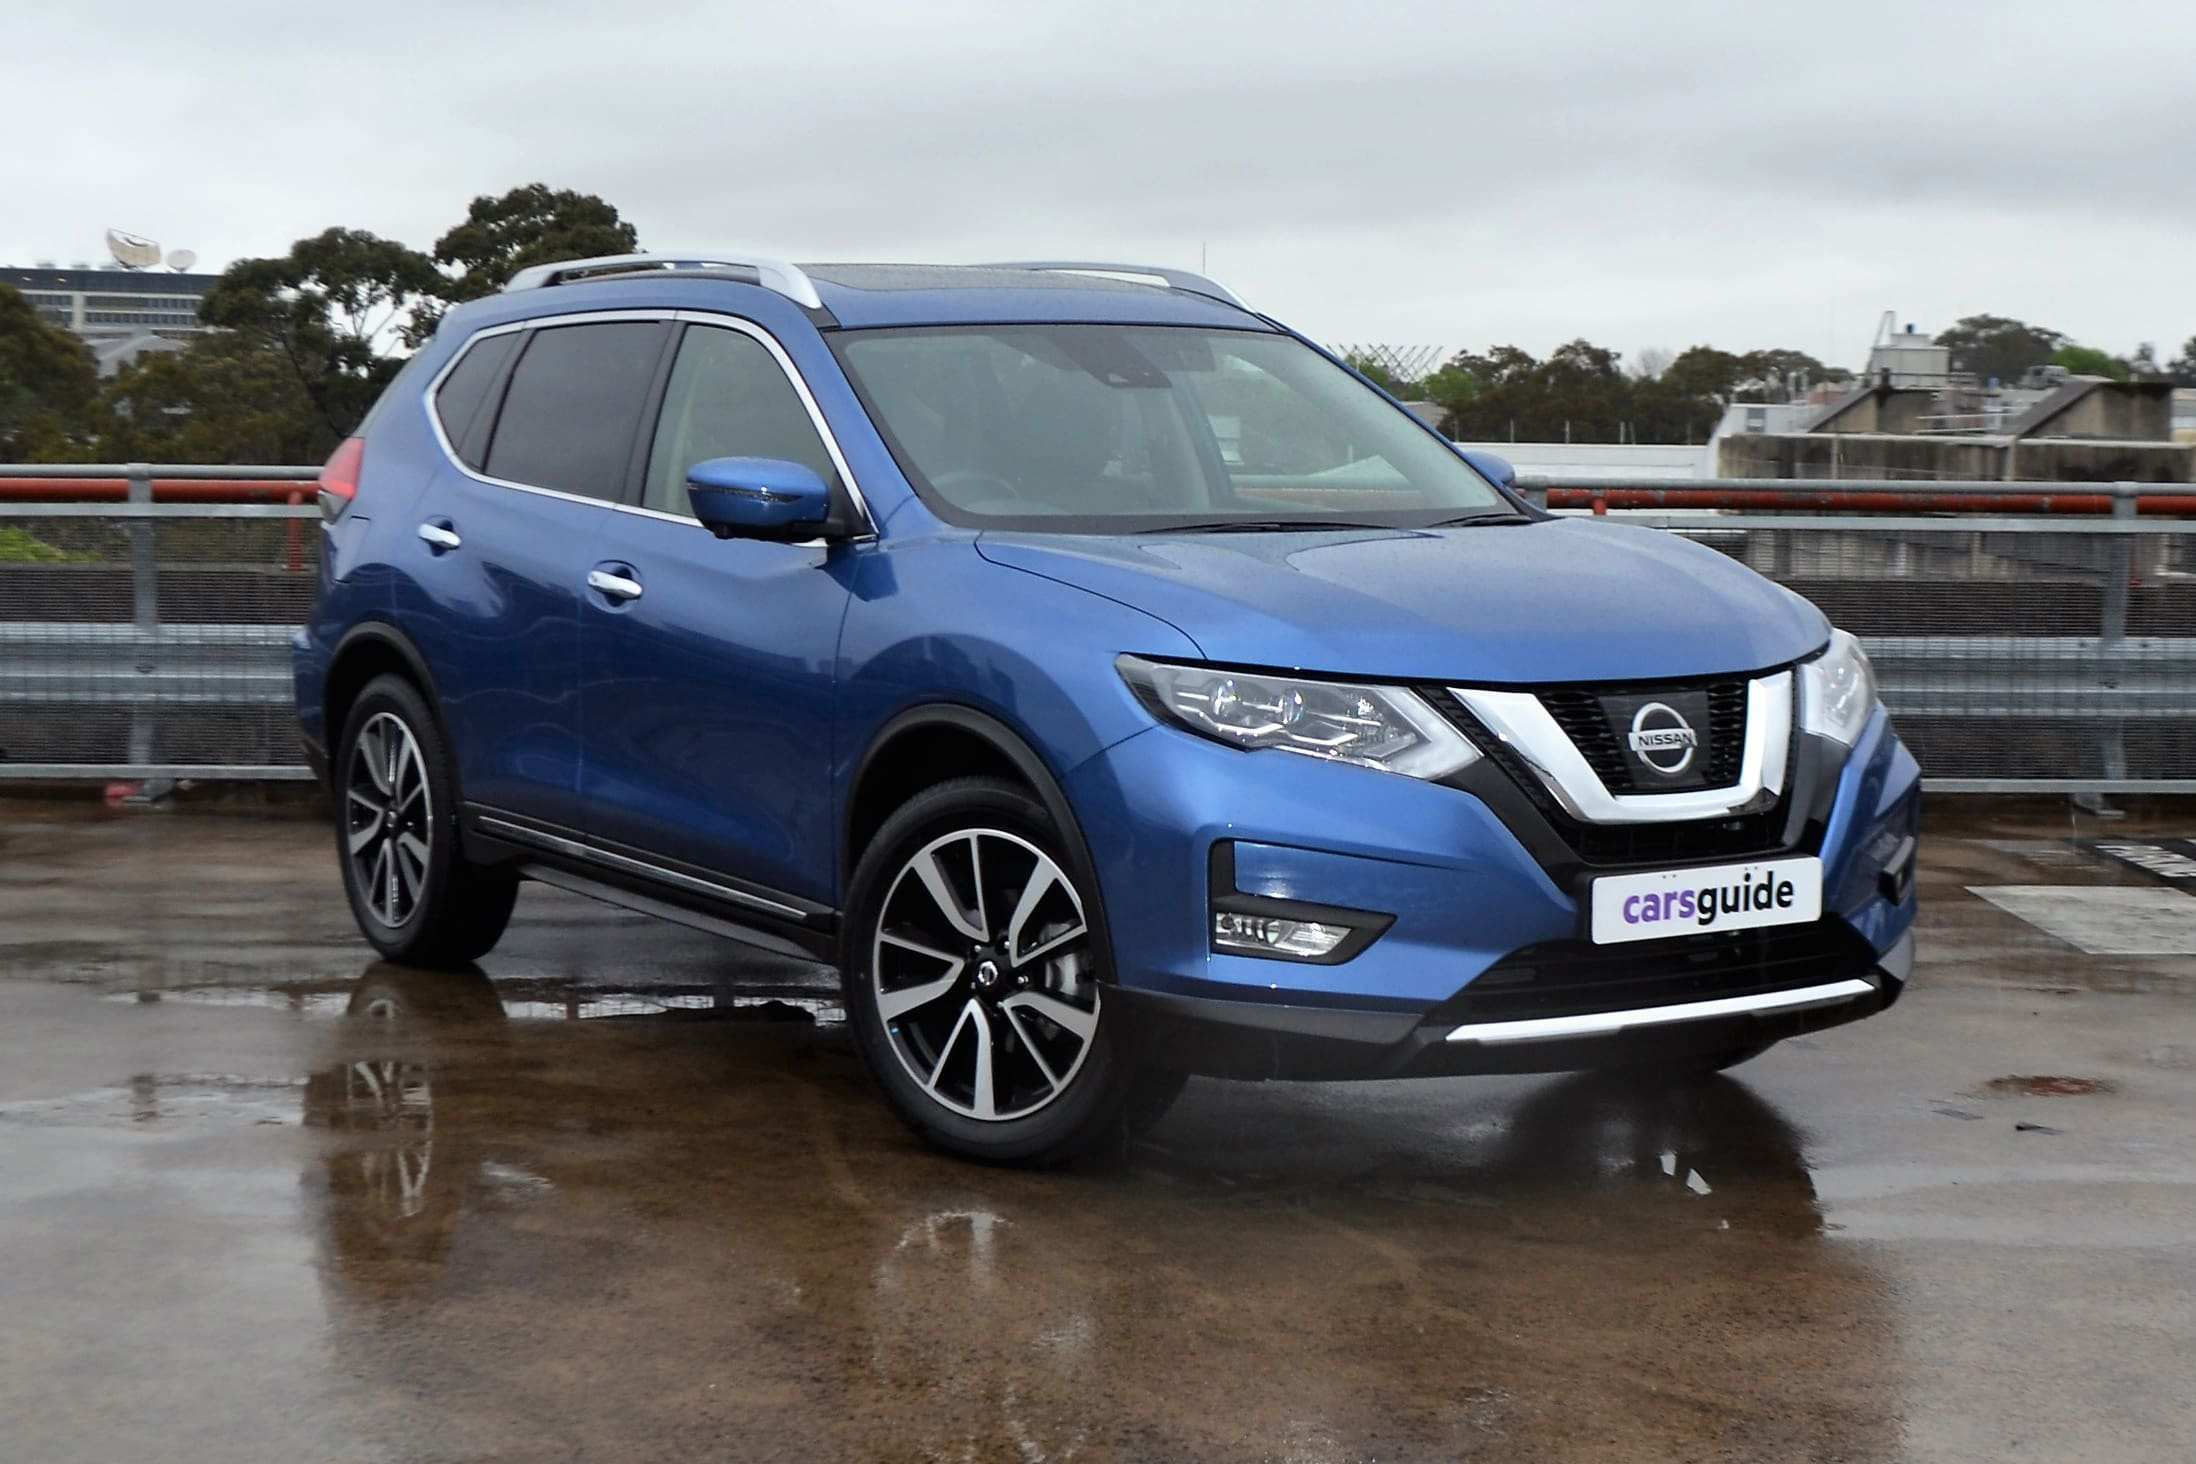 57 New Nissan X Trail 2019 Review Release Date